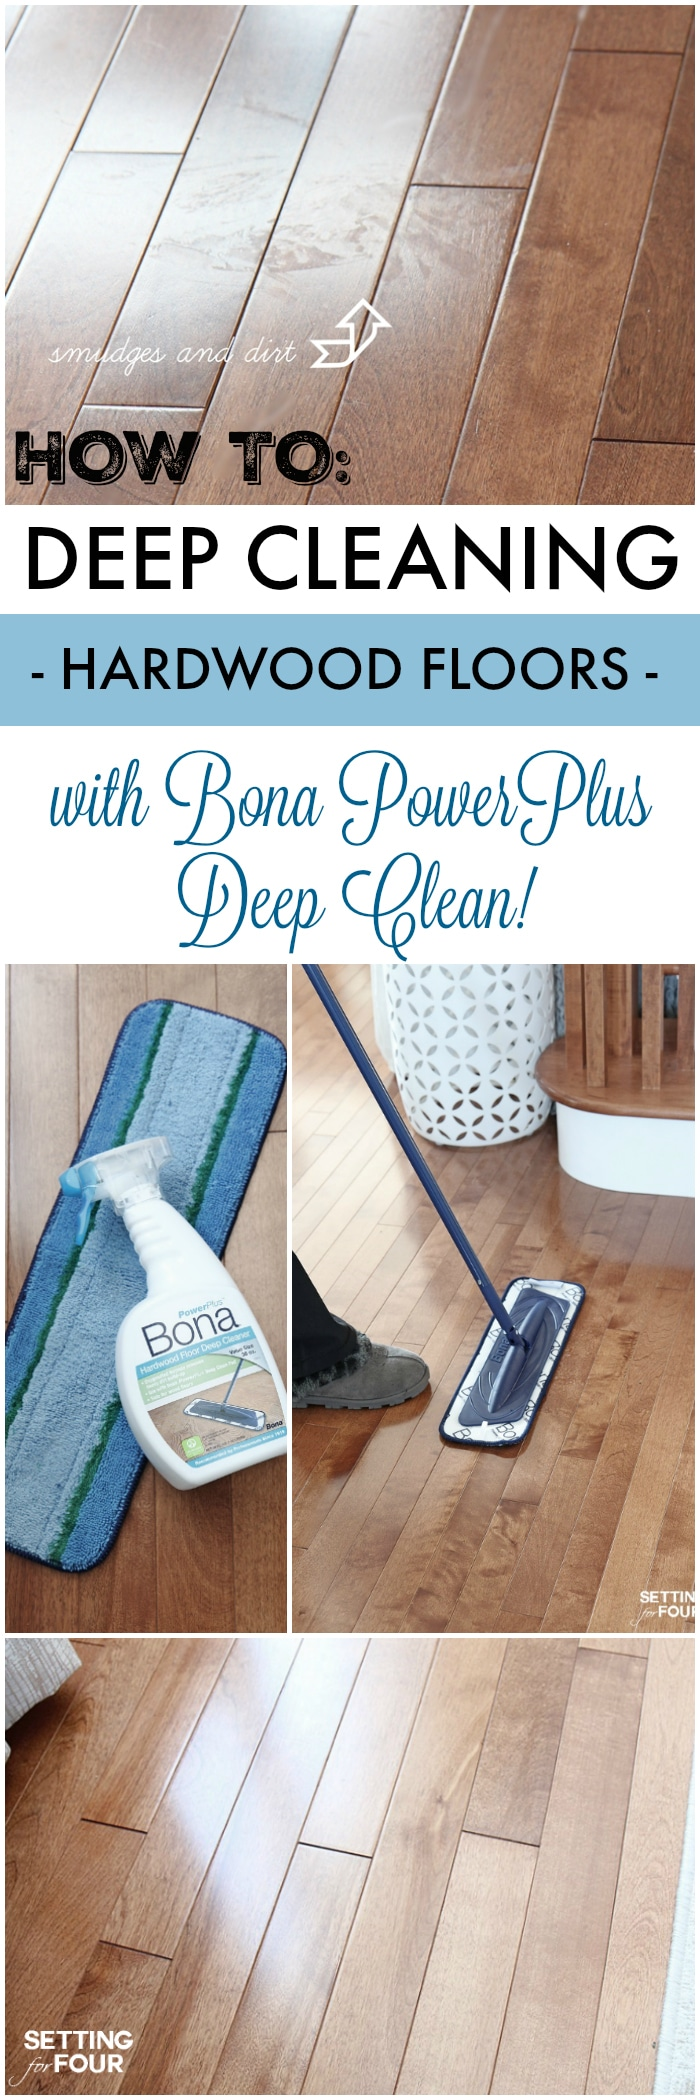 How to: deep cleaning hardwood floors to a shine the easy way! Get the floor care tips at SettingforFour.com